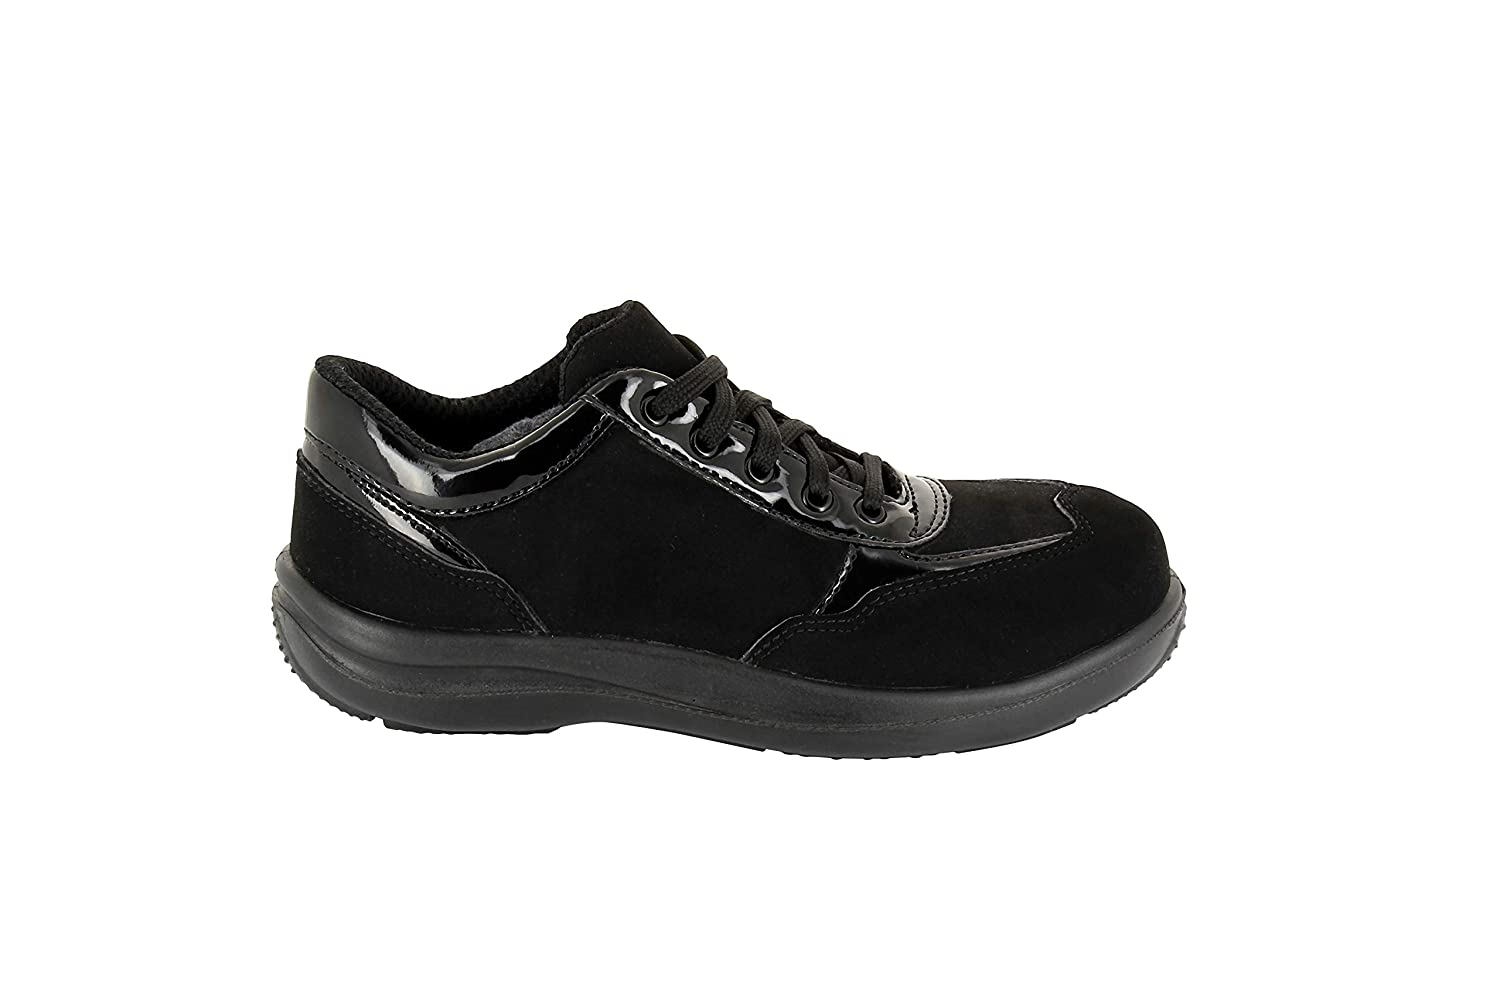 Foxter - Safety Shoes   for Women   High Comfort   Work Trainers   Light and Breathable   Waterproof   Metal Free   S3 SRA